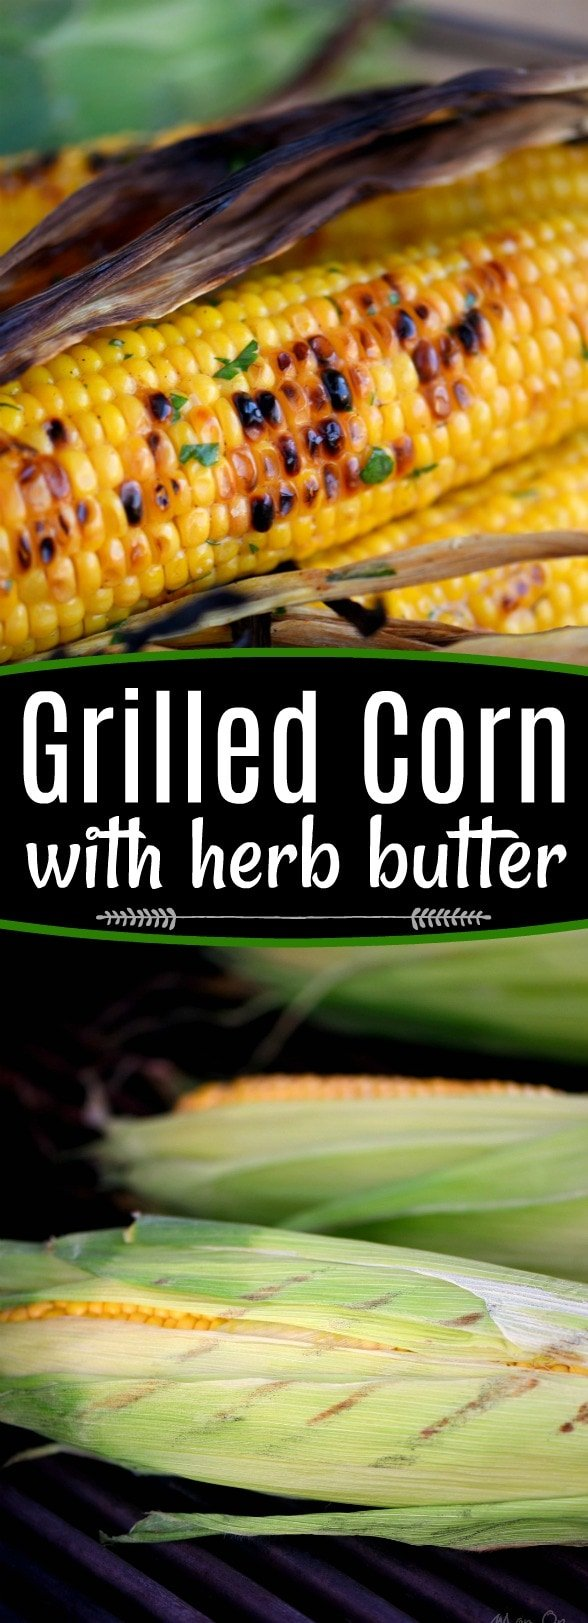 Nothing says summer like corn on the cob! This Grilled Corn with Herb Butter is sure to be a delightful addition to your summer entertaining menu. So easy to prepare and always a big hit with friends and family! // Mom On Timeout